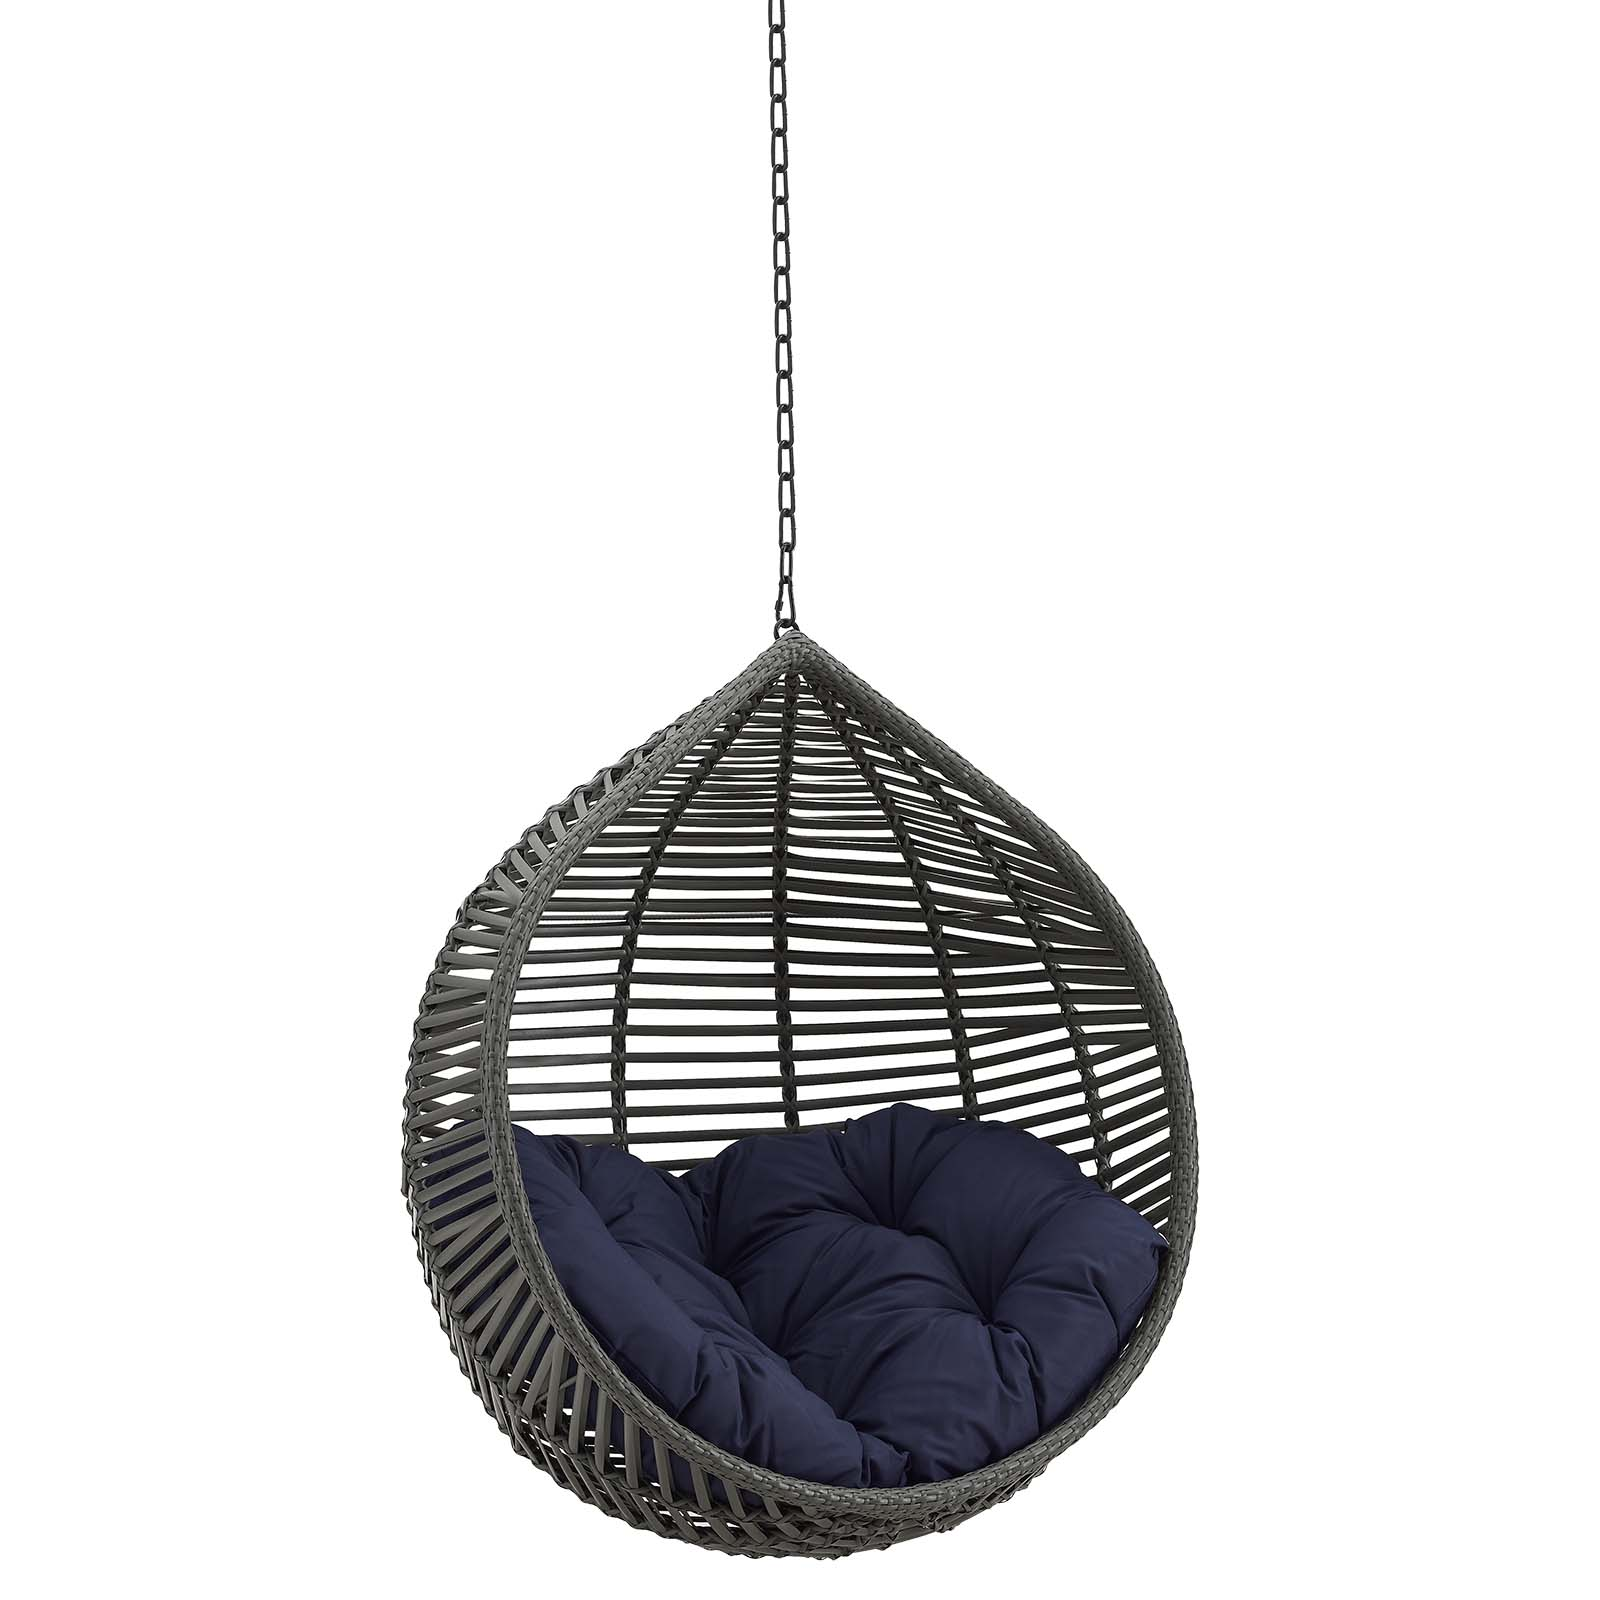 Garner Teardrop Outdoor Patio Swing Chair Without Stand ...